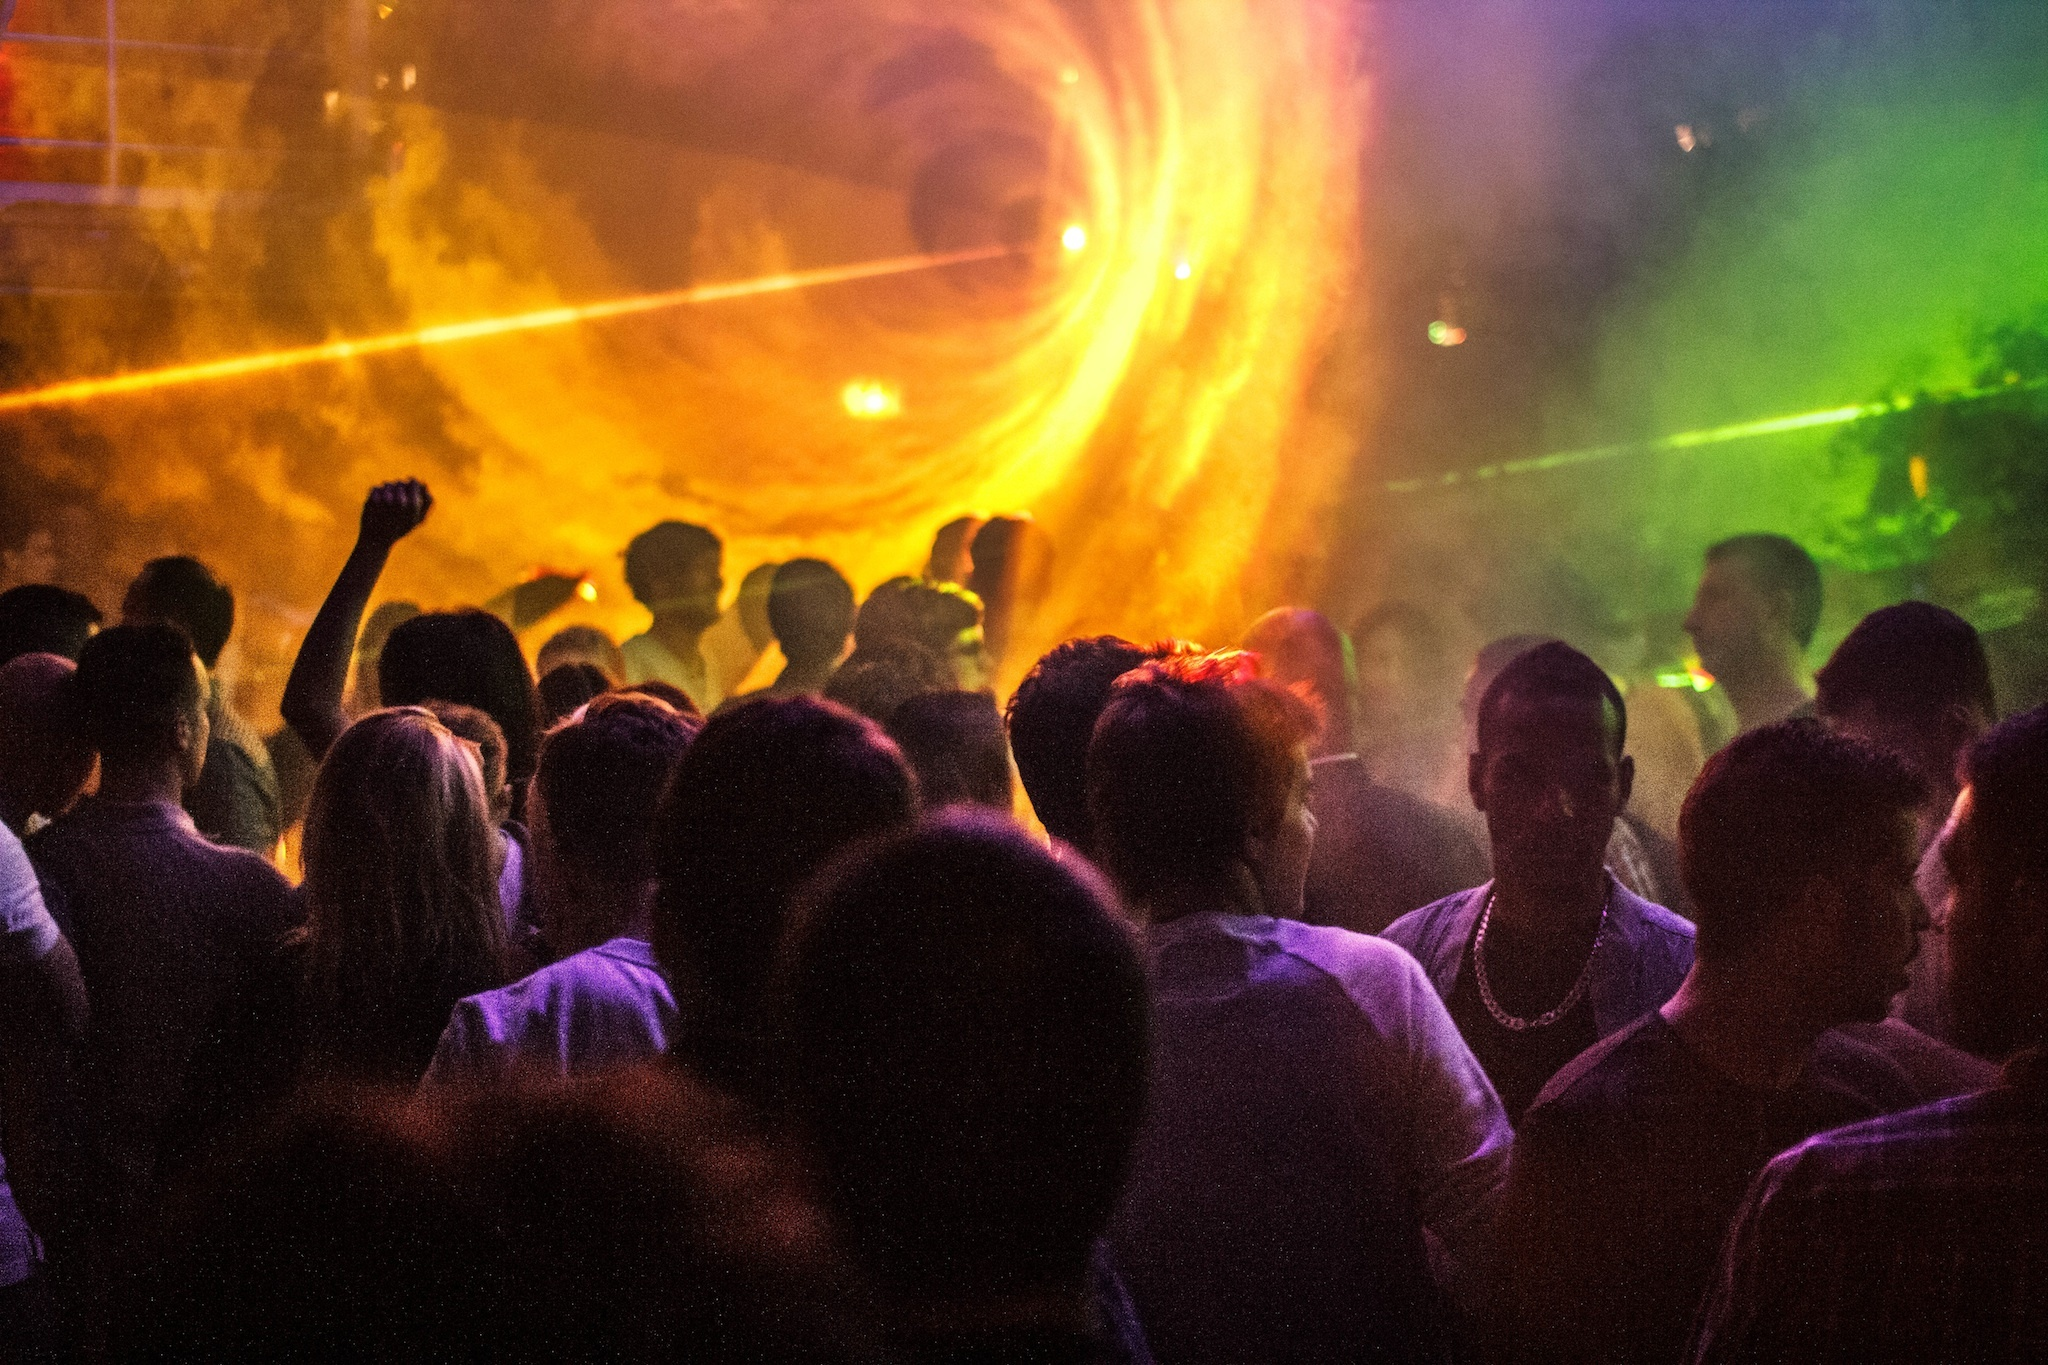 Get down this weekend with Mike Skinner, Erol Alkan and more epic DJs with our pick of the parties